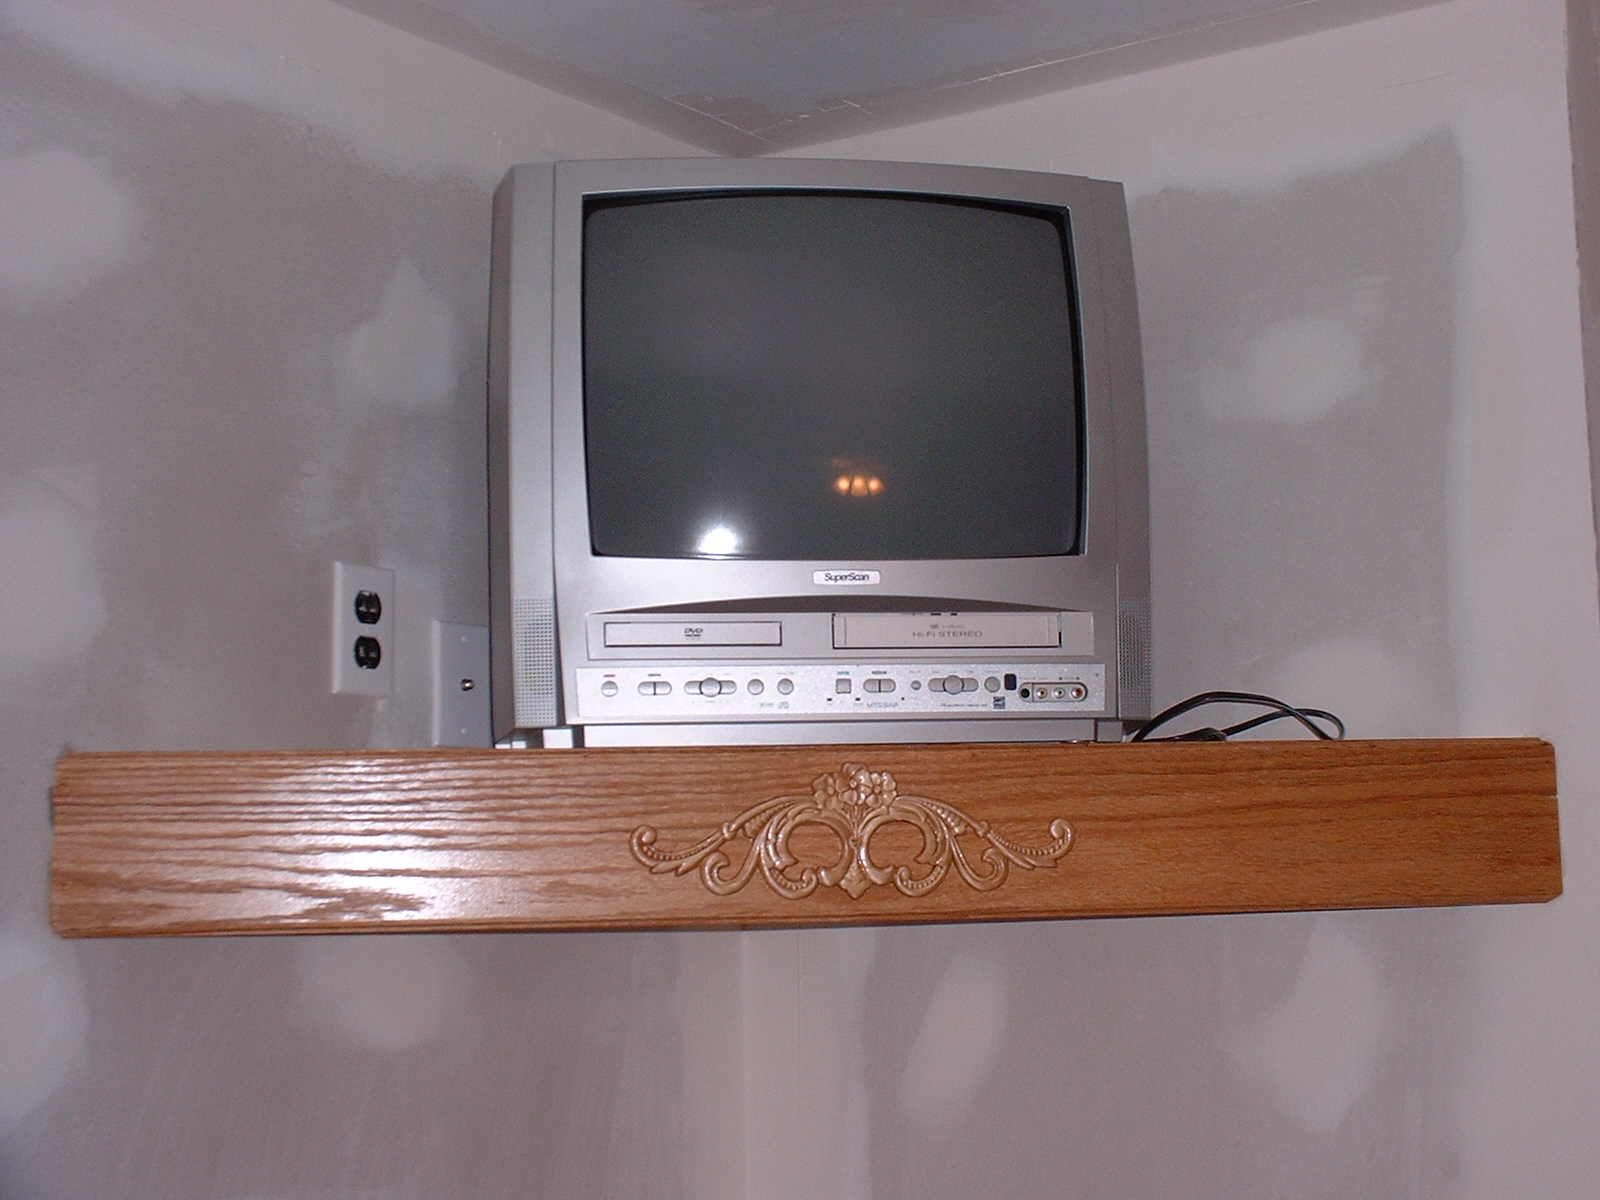 The t.v. sits real nice on this custom oak shelf.